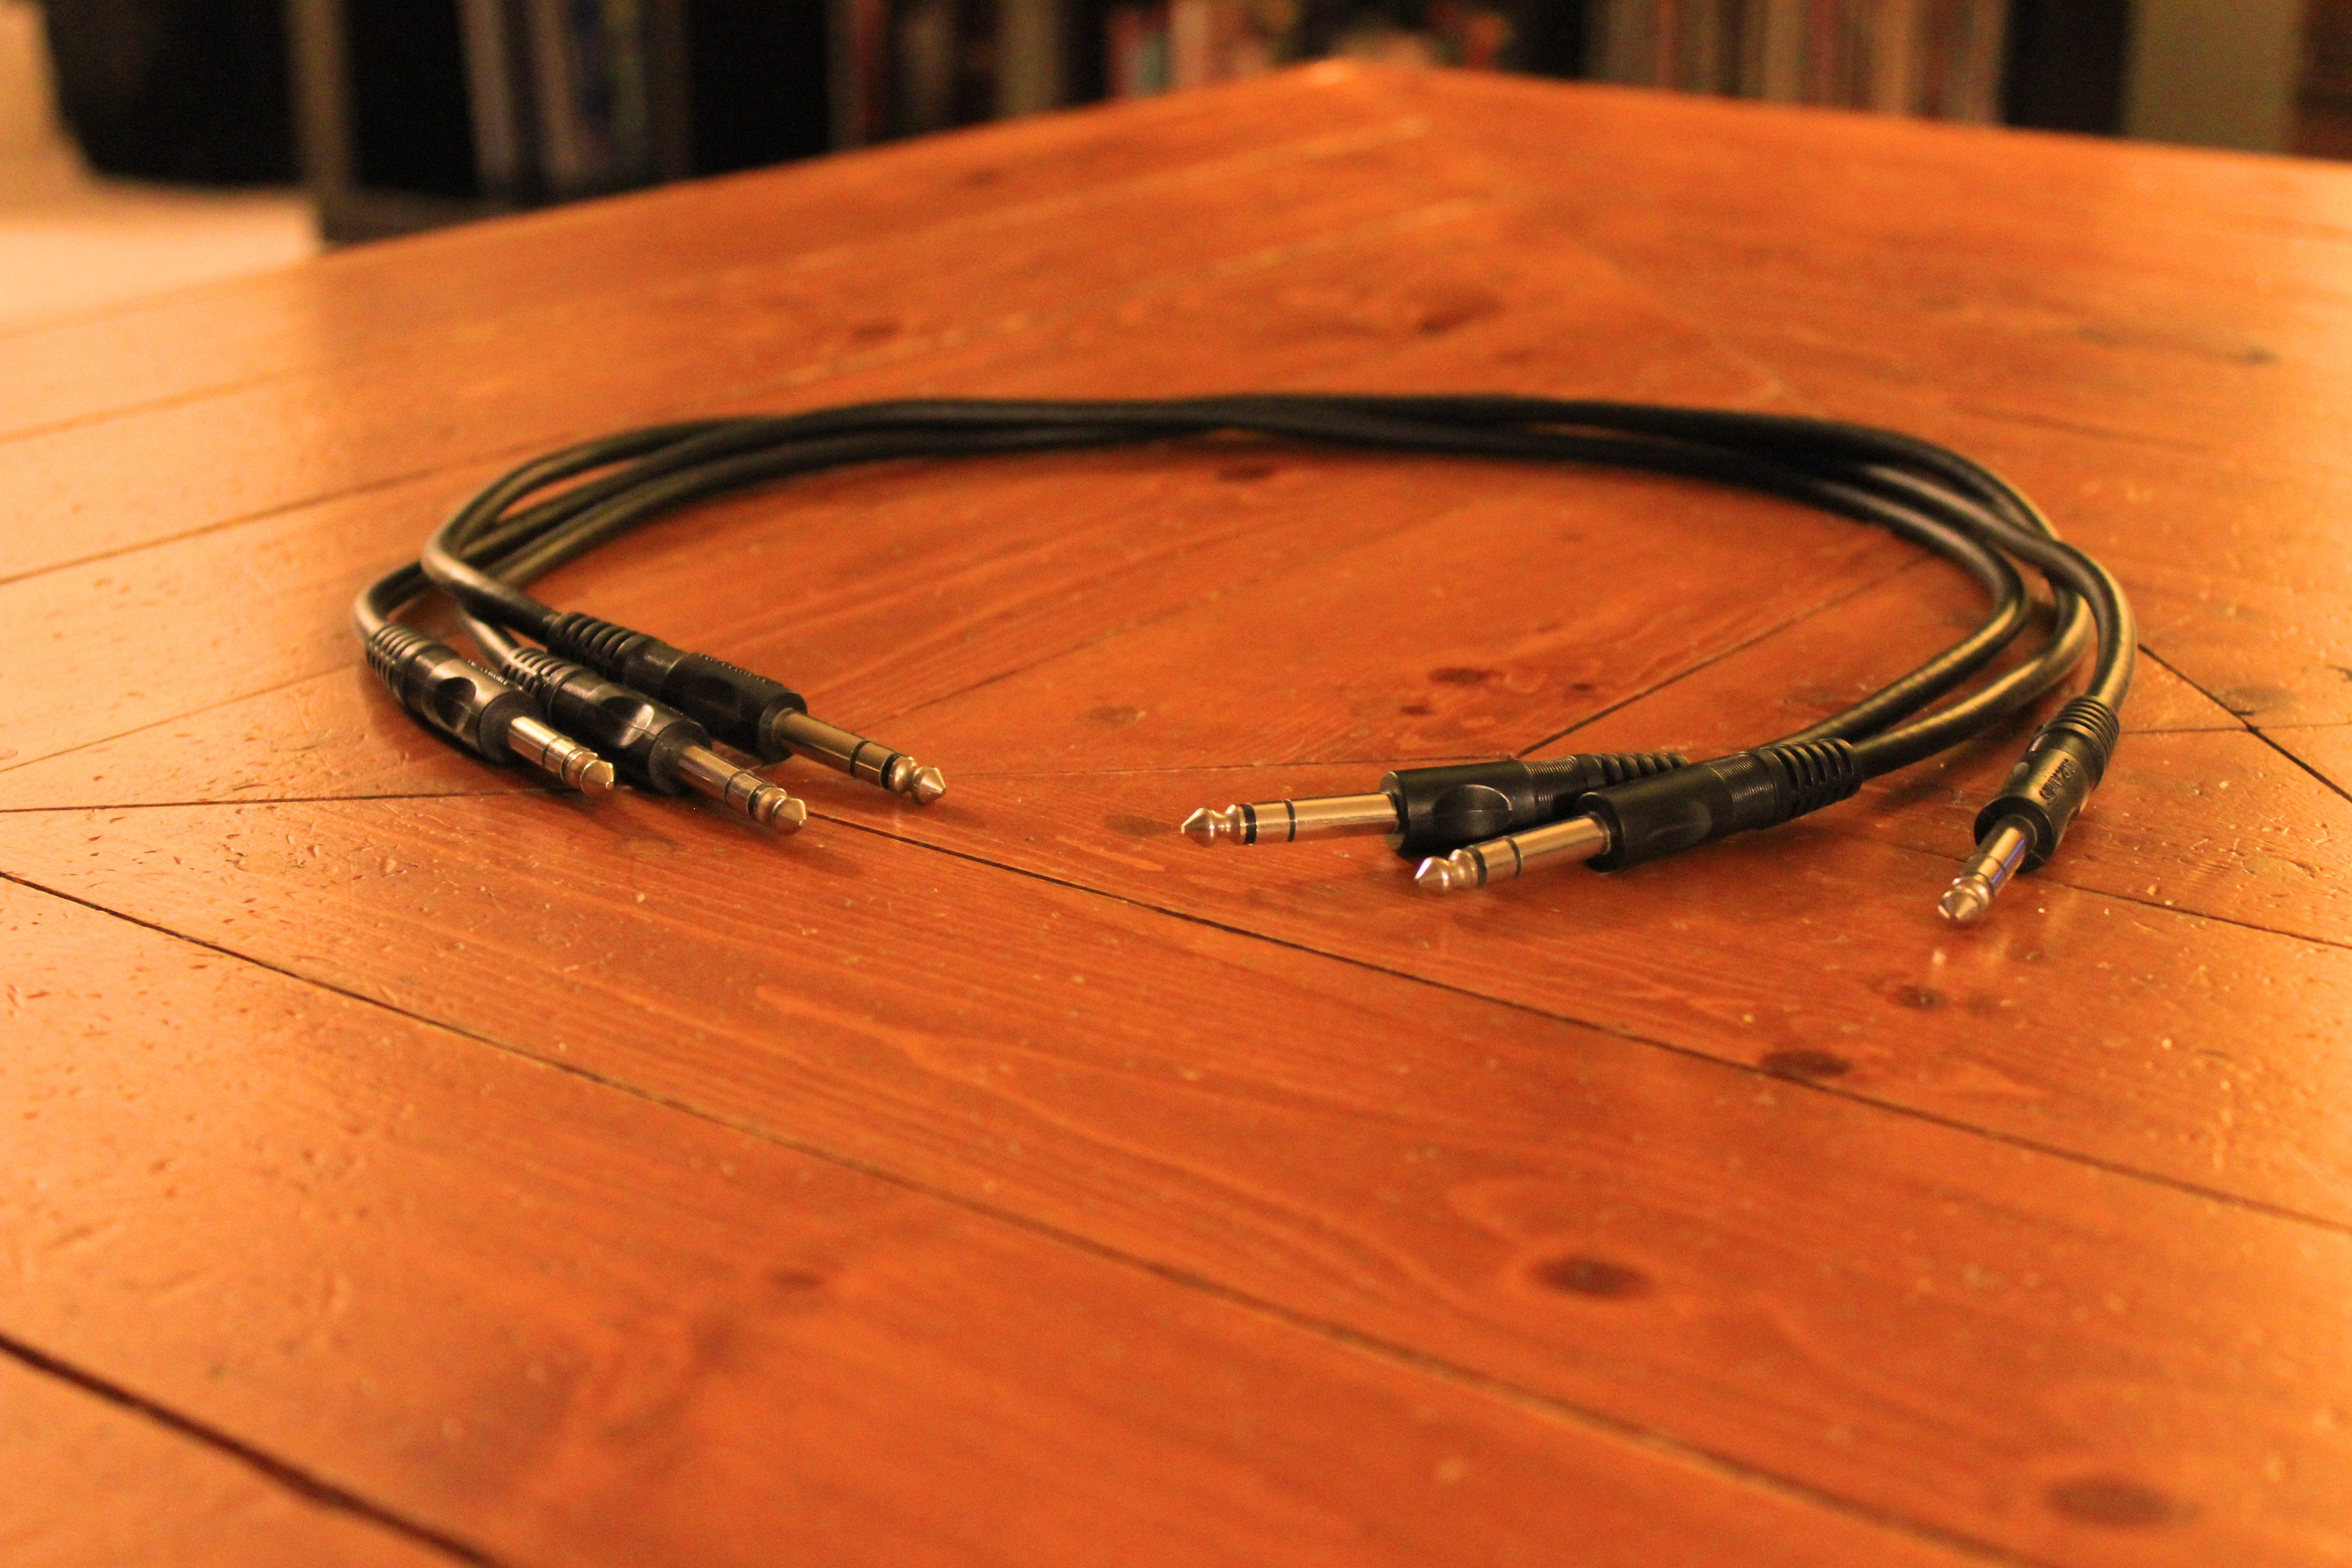 1/4-inch patch cables